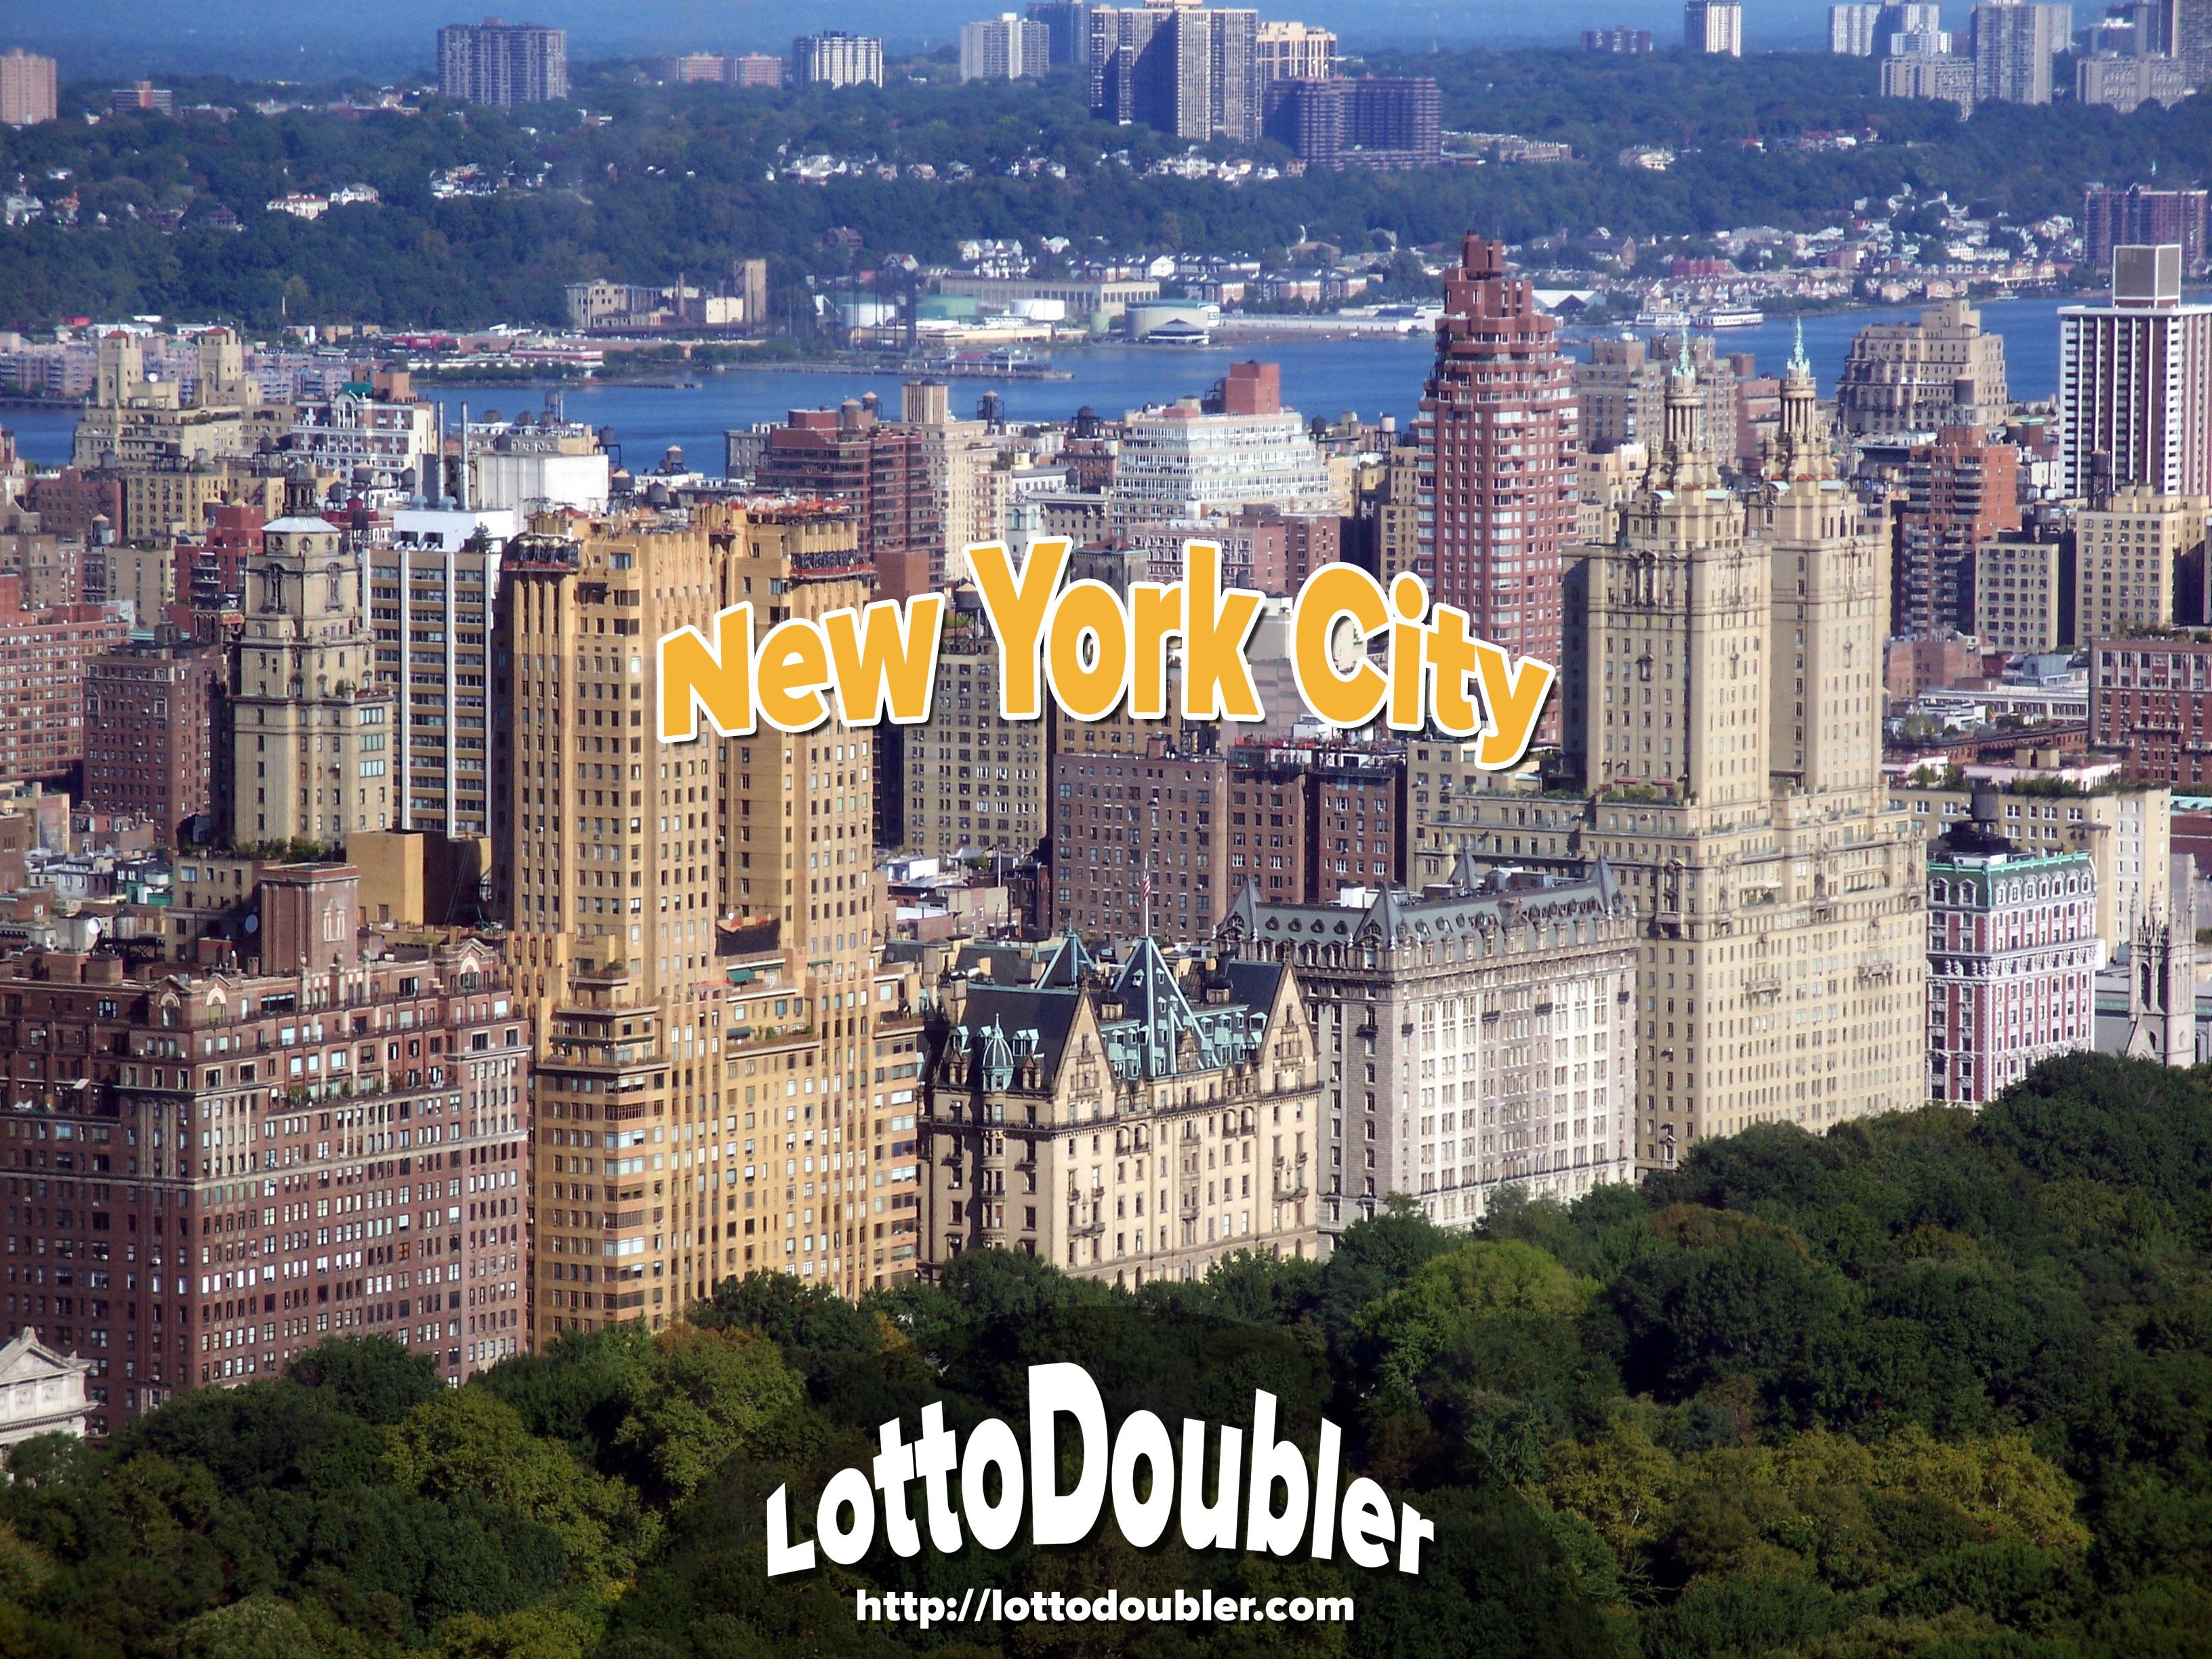 New York City | Lotto Doubler instant lottery